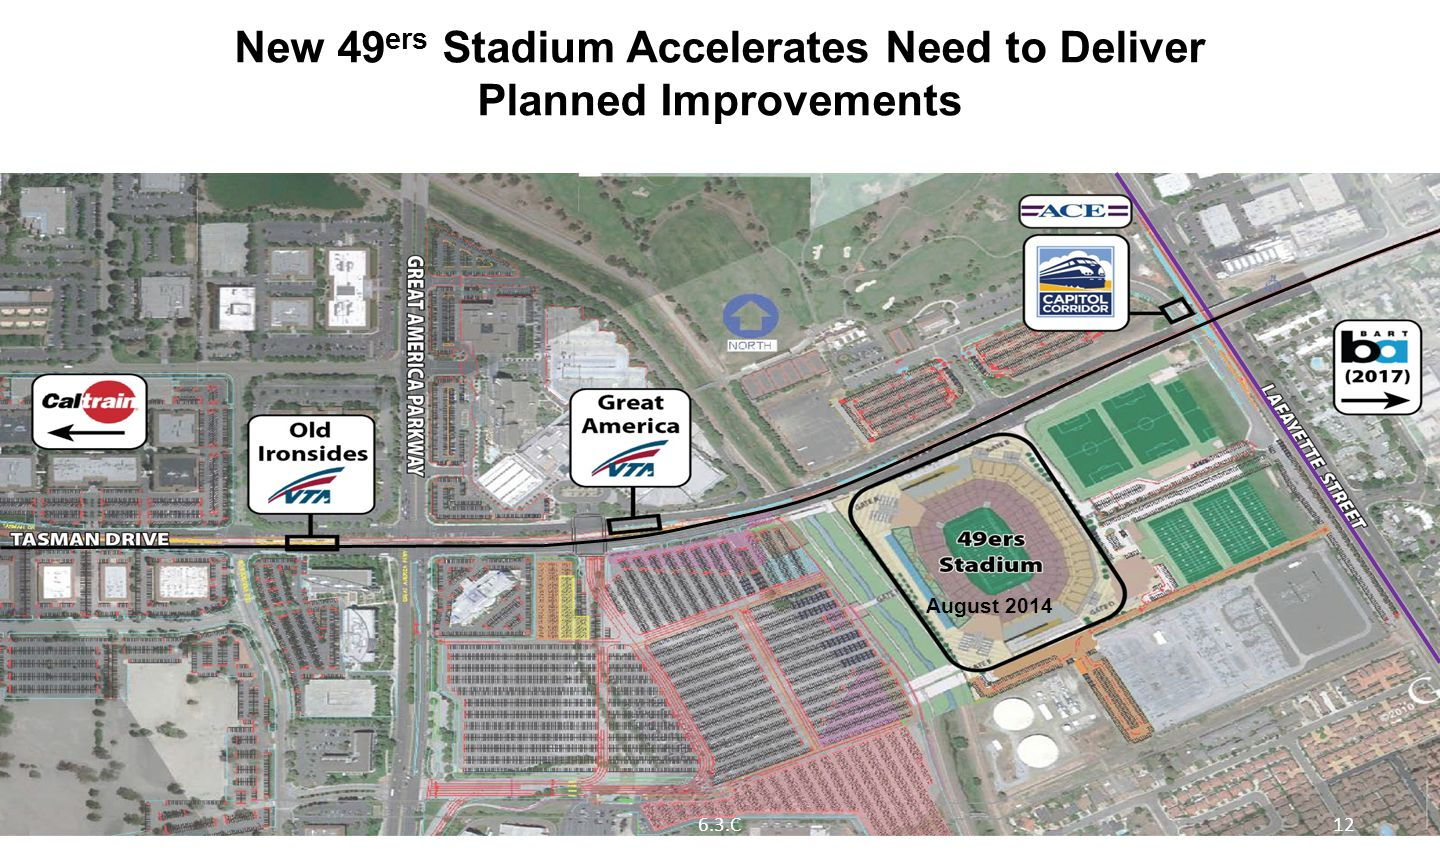 New 49 ers Stadium Accelerates Need to Deliver Planned Improvements Source: 49ers Stadium EIR, 2009/ AECOM, 2012 August 2014 126.3.C